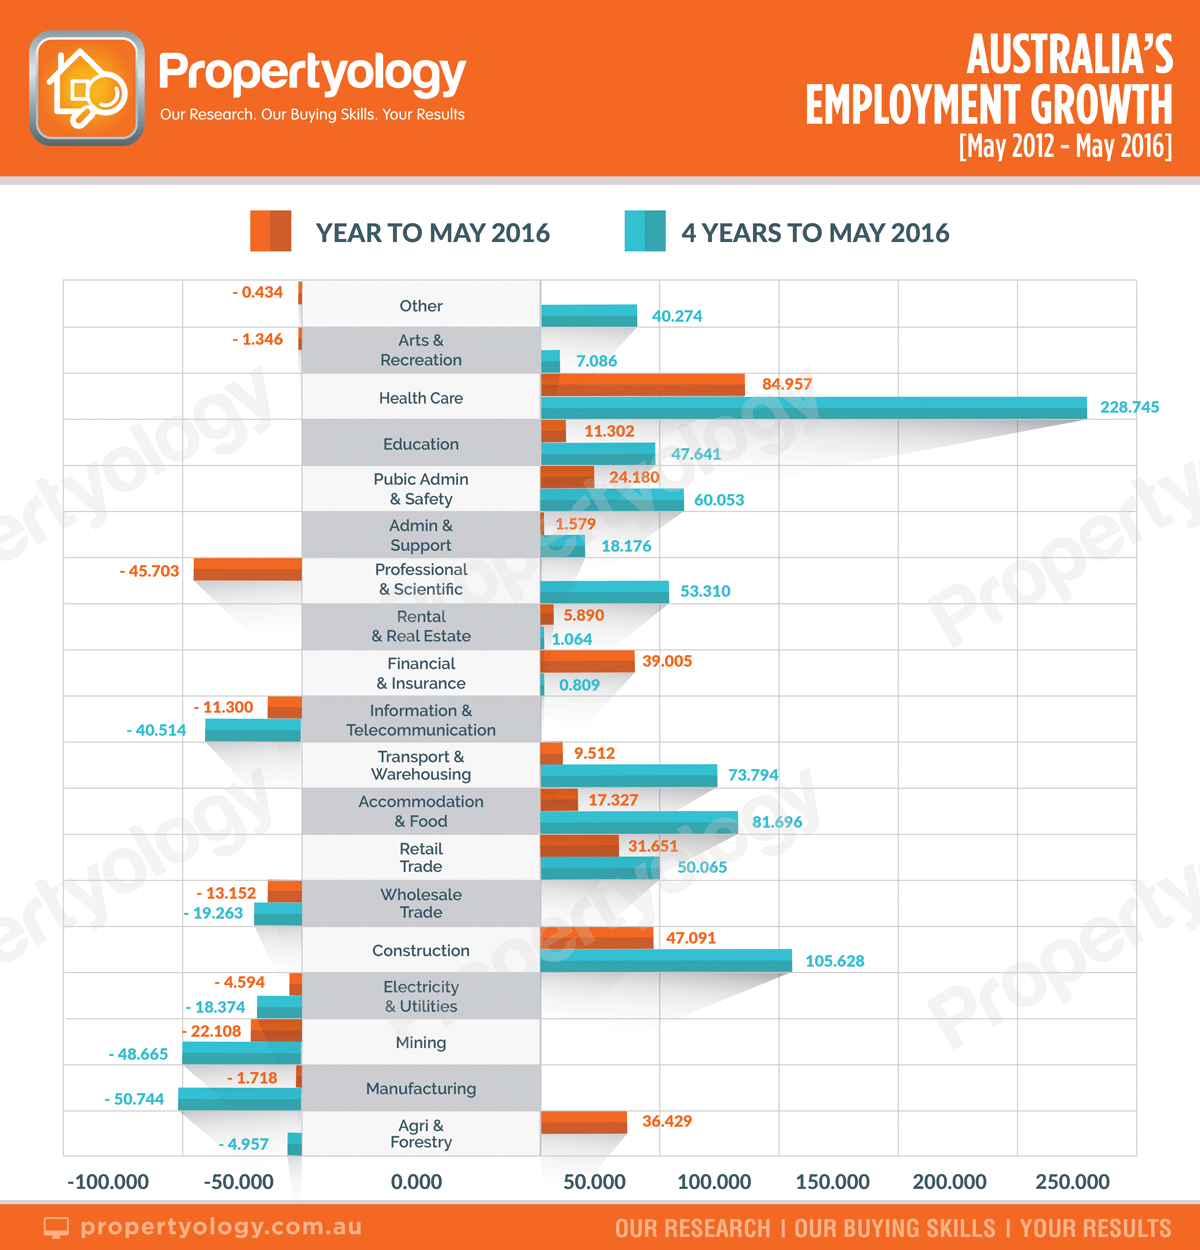 propertyology-australia-employment-volume-growth-with-watermarks